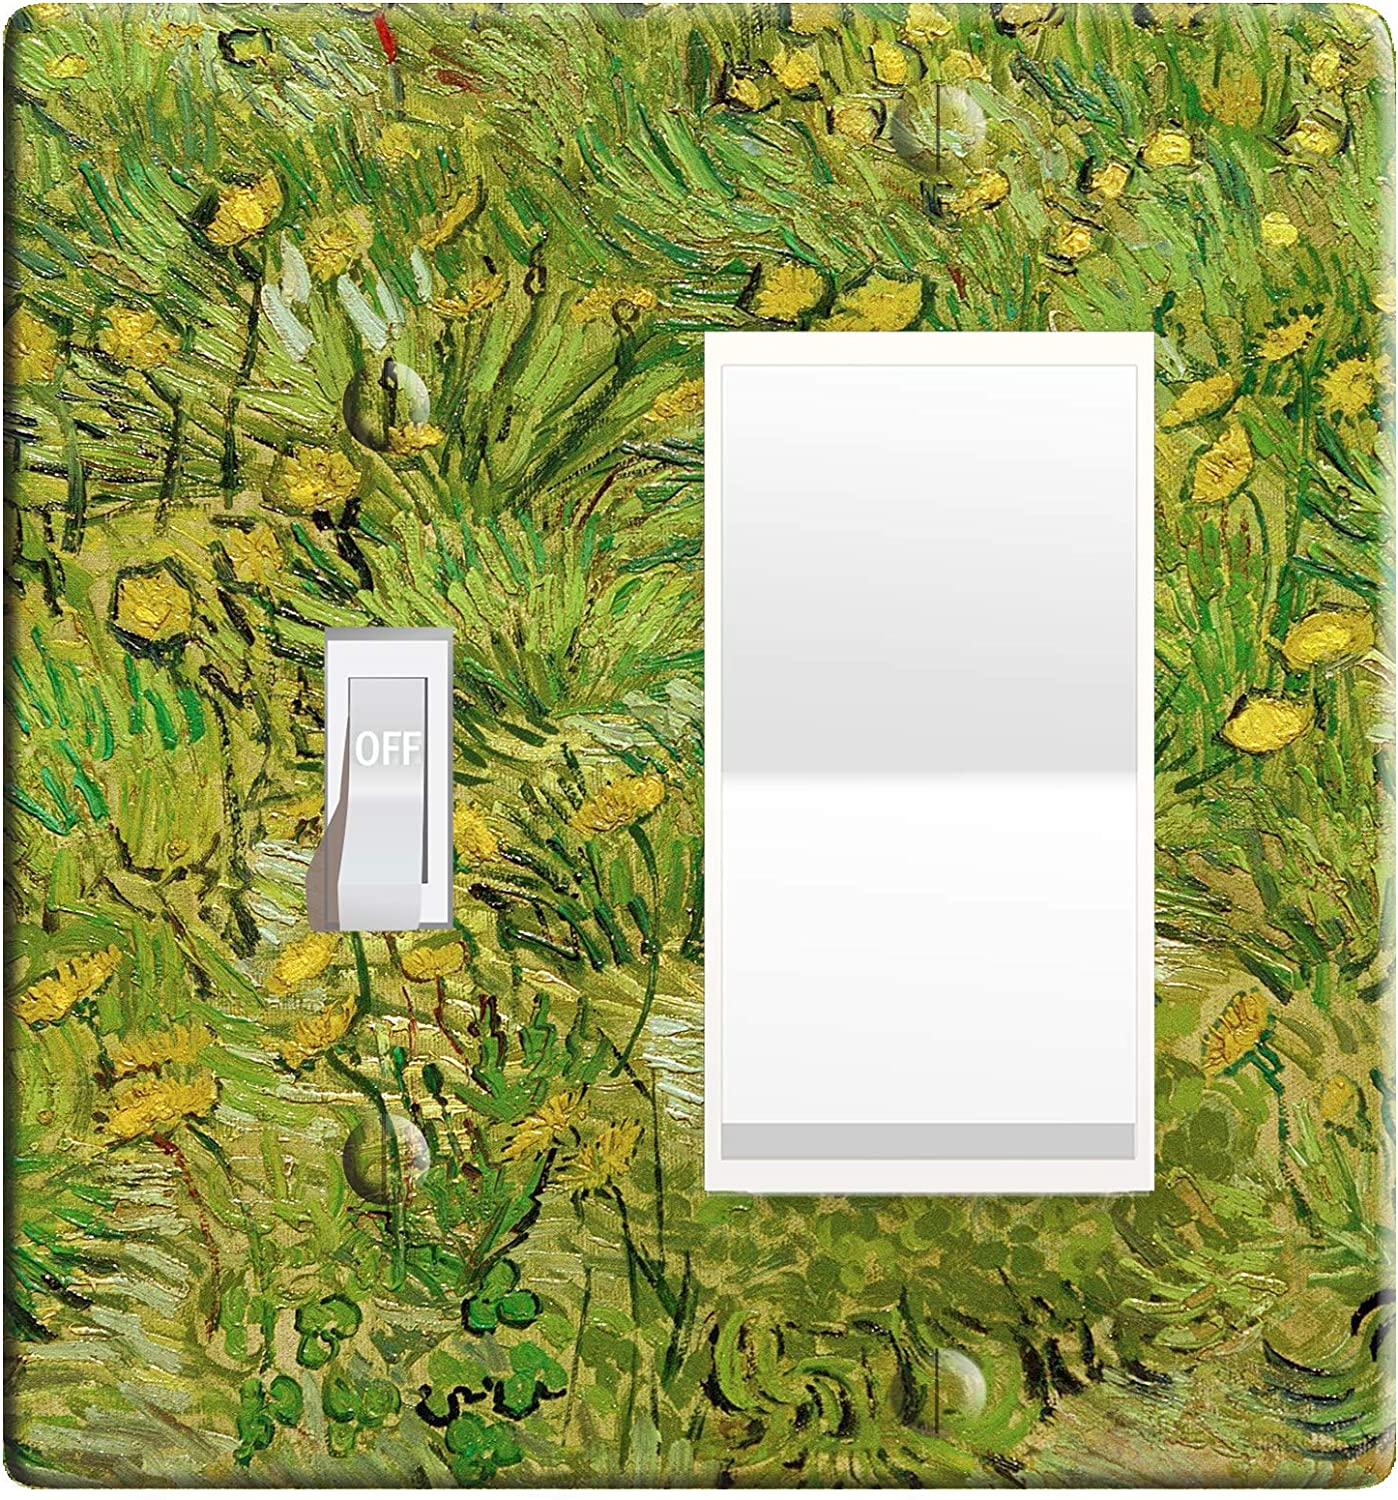 Embossi Printed Maxi Metal Vincent Van Gogh A Field With Dandelions Switch Plate Light Switch Outlet Cover L0155 2 Gang Toggle Rocker